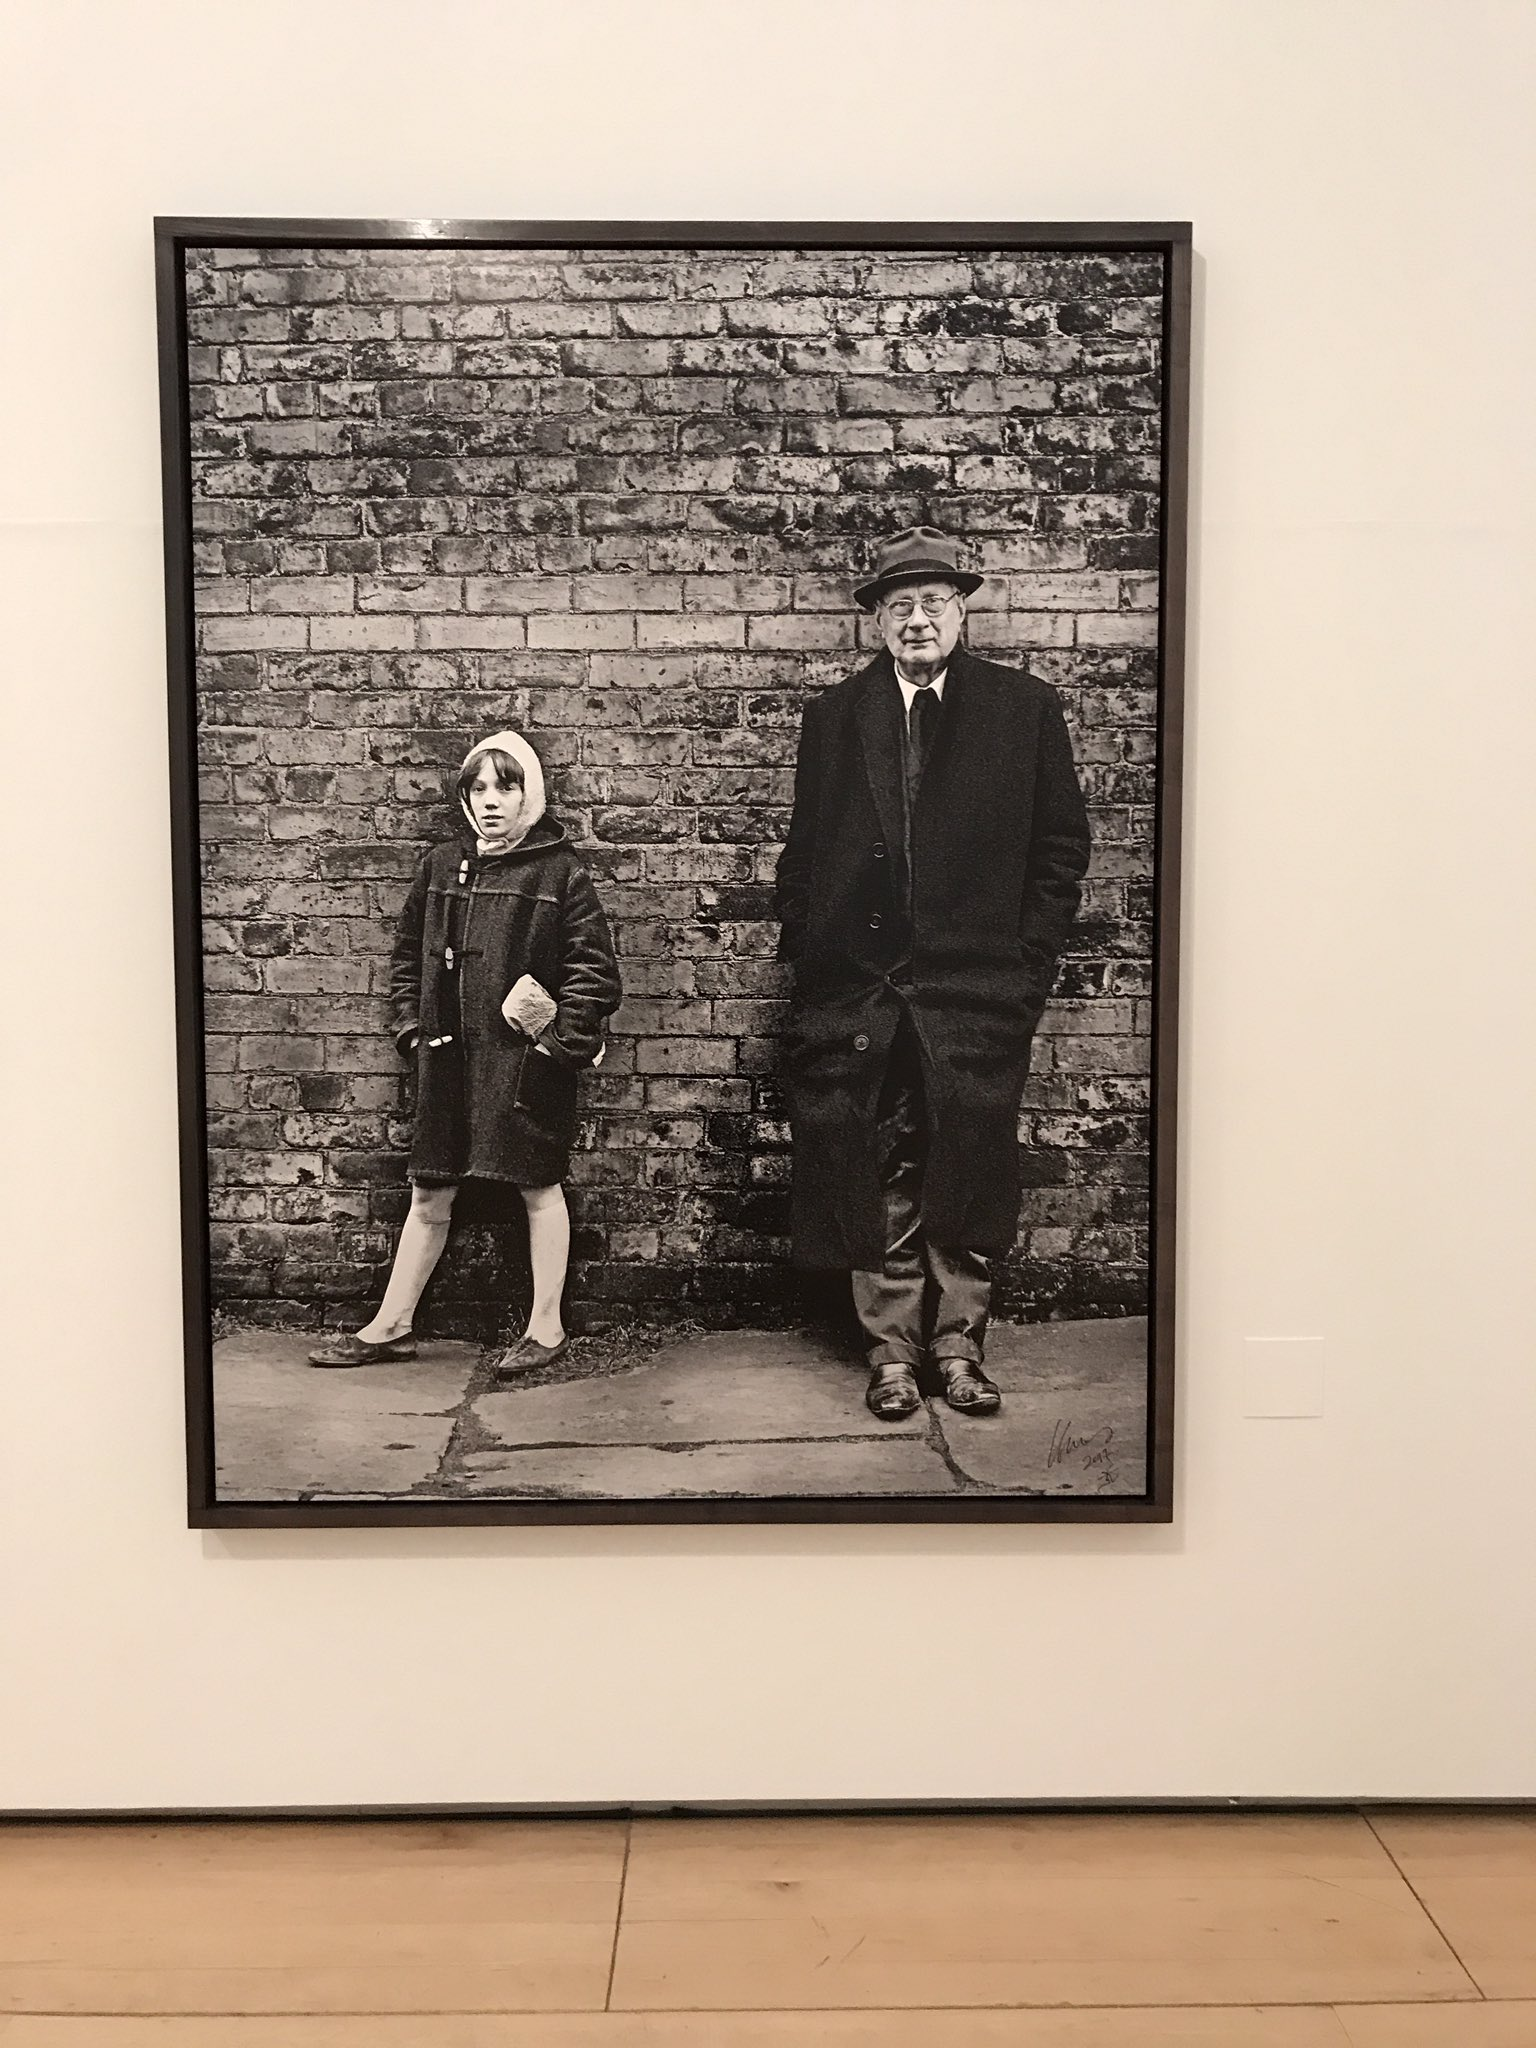 'meeting' my hero Lowry in the #CliveArrowsmith exhibition in Salford. Wonderful, just wonderful. https://t.co/VI8dpxX6Lu